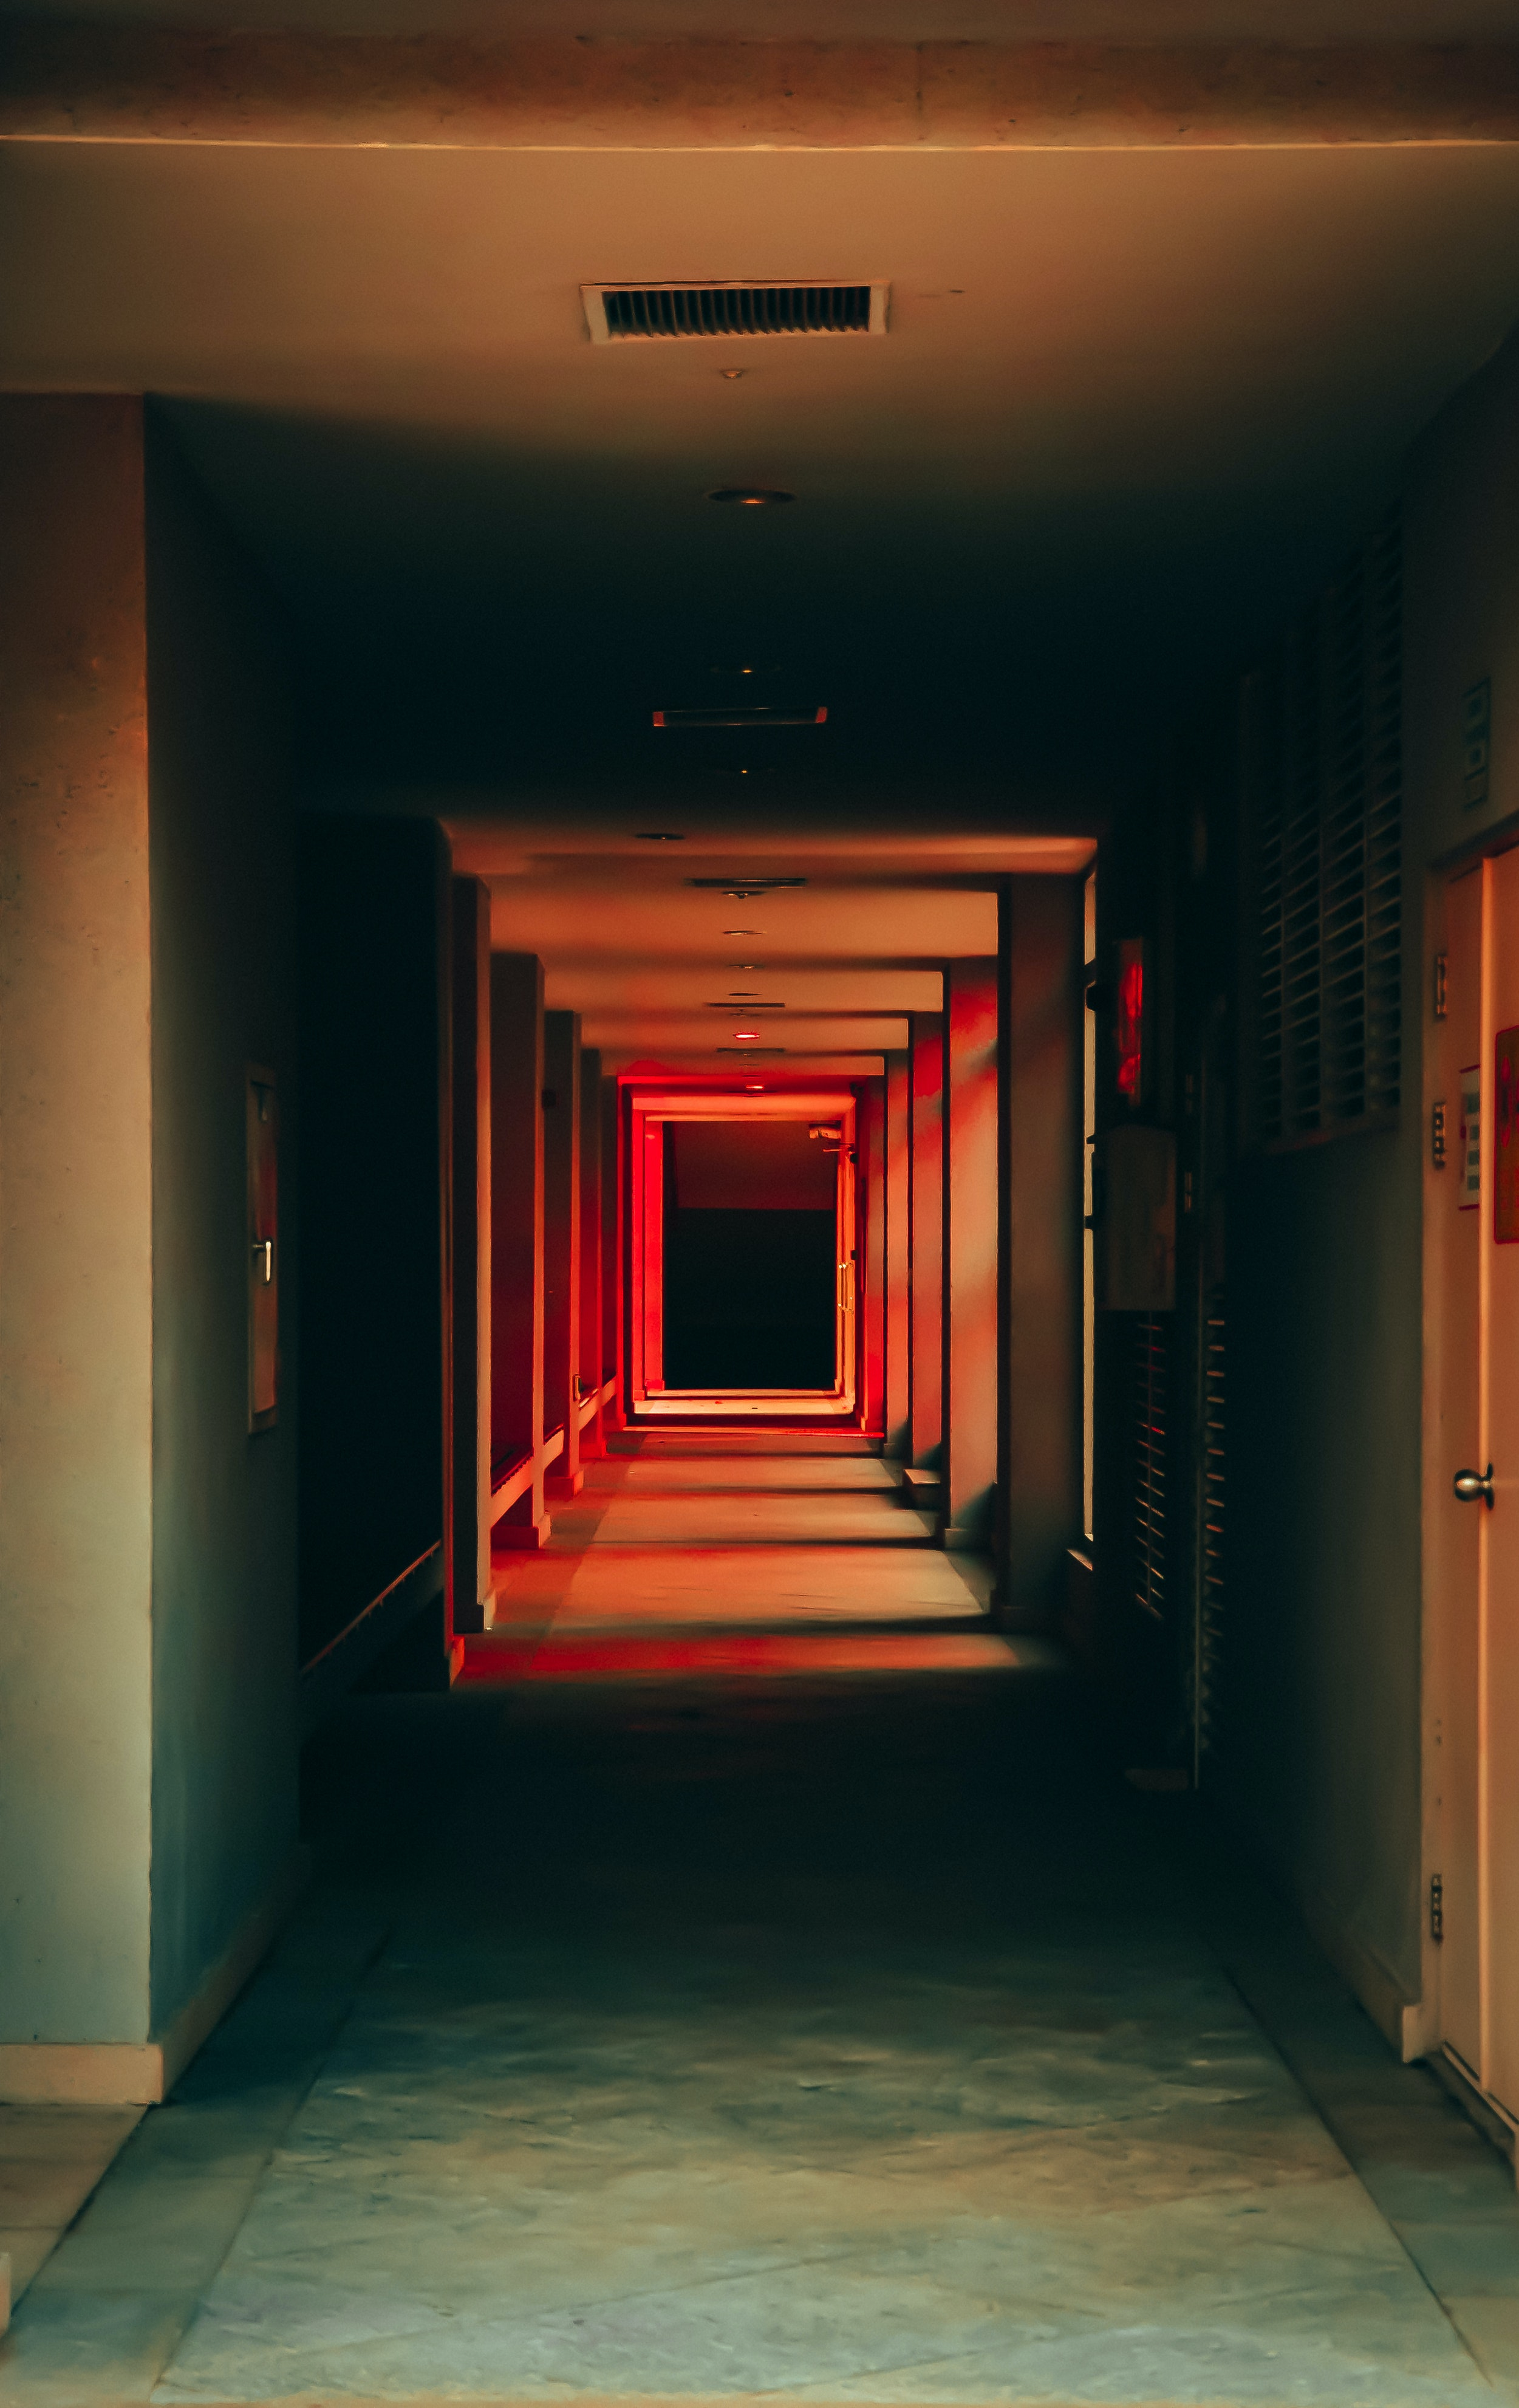 Corridor with red lights